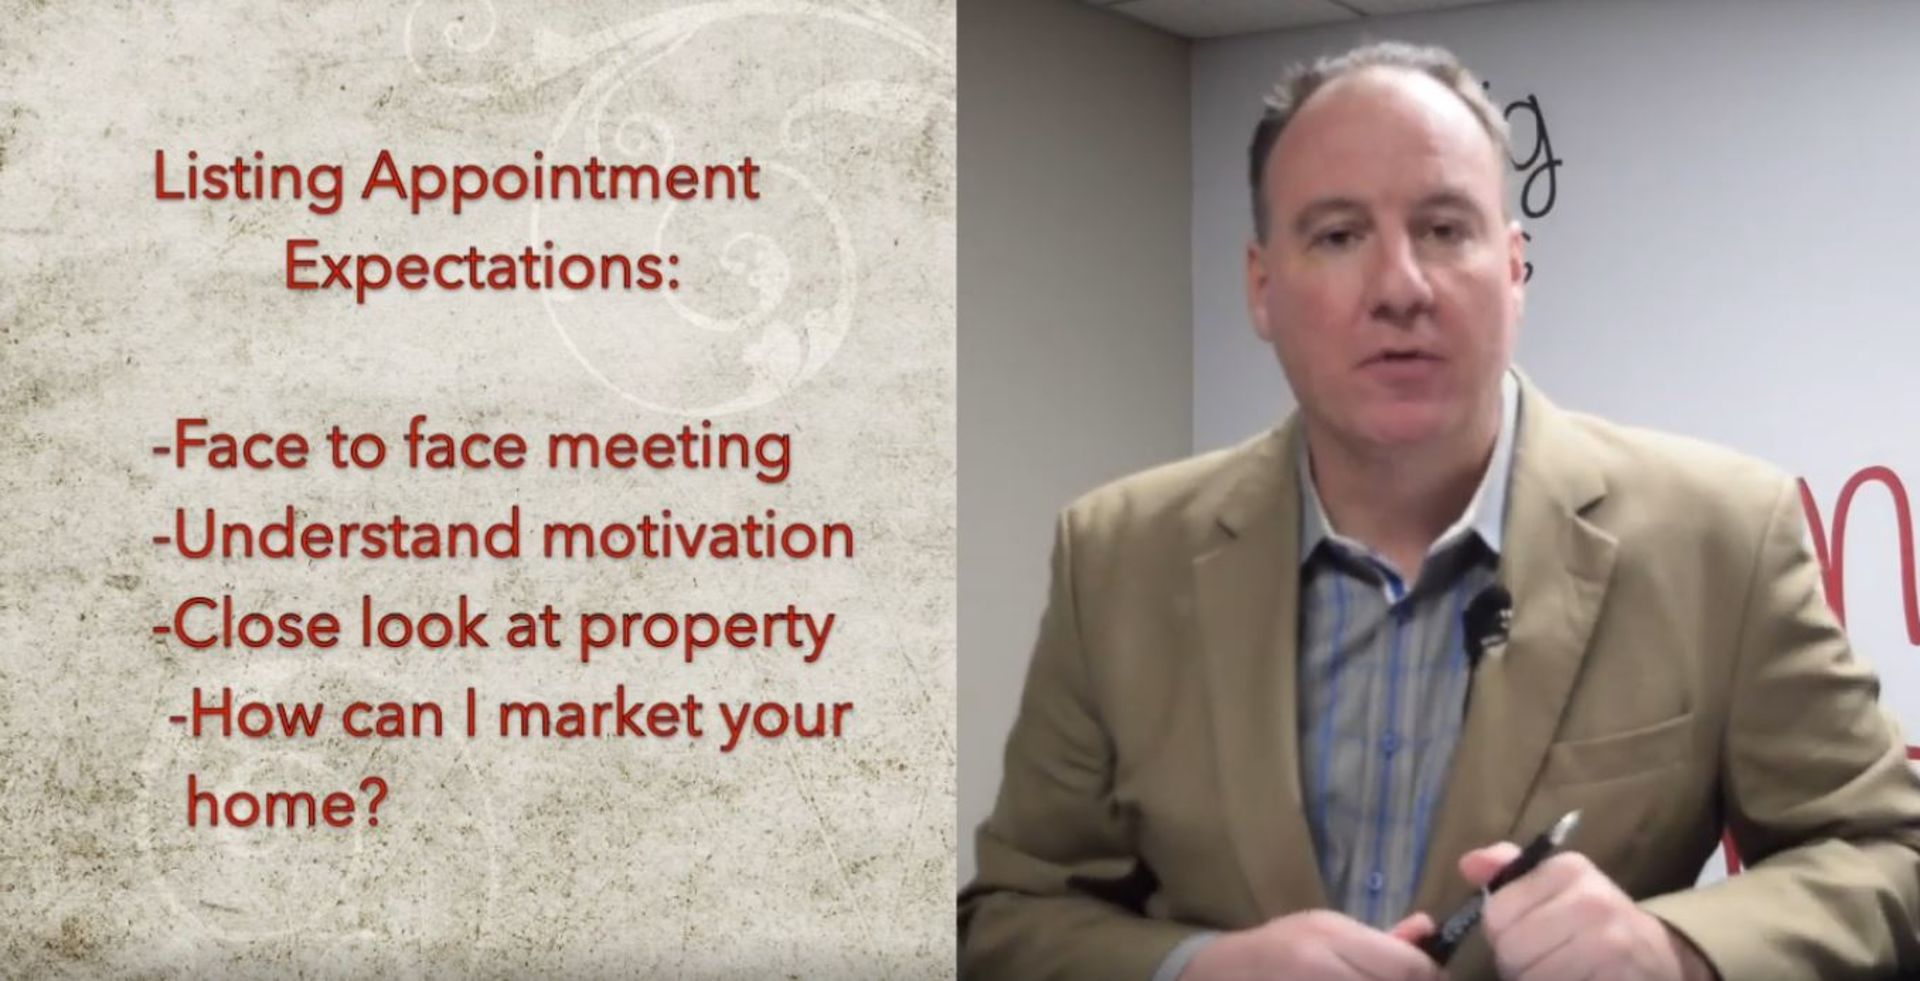 What to expect at a listing appointment